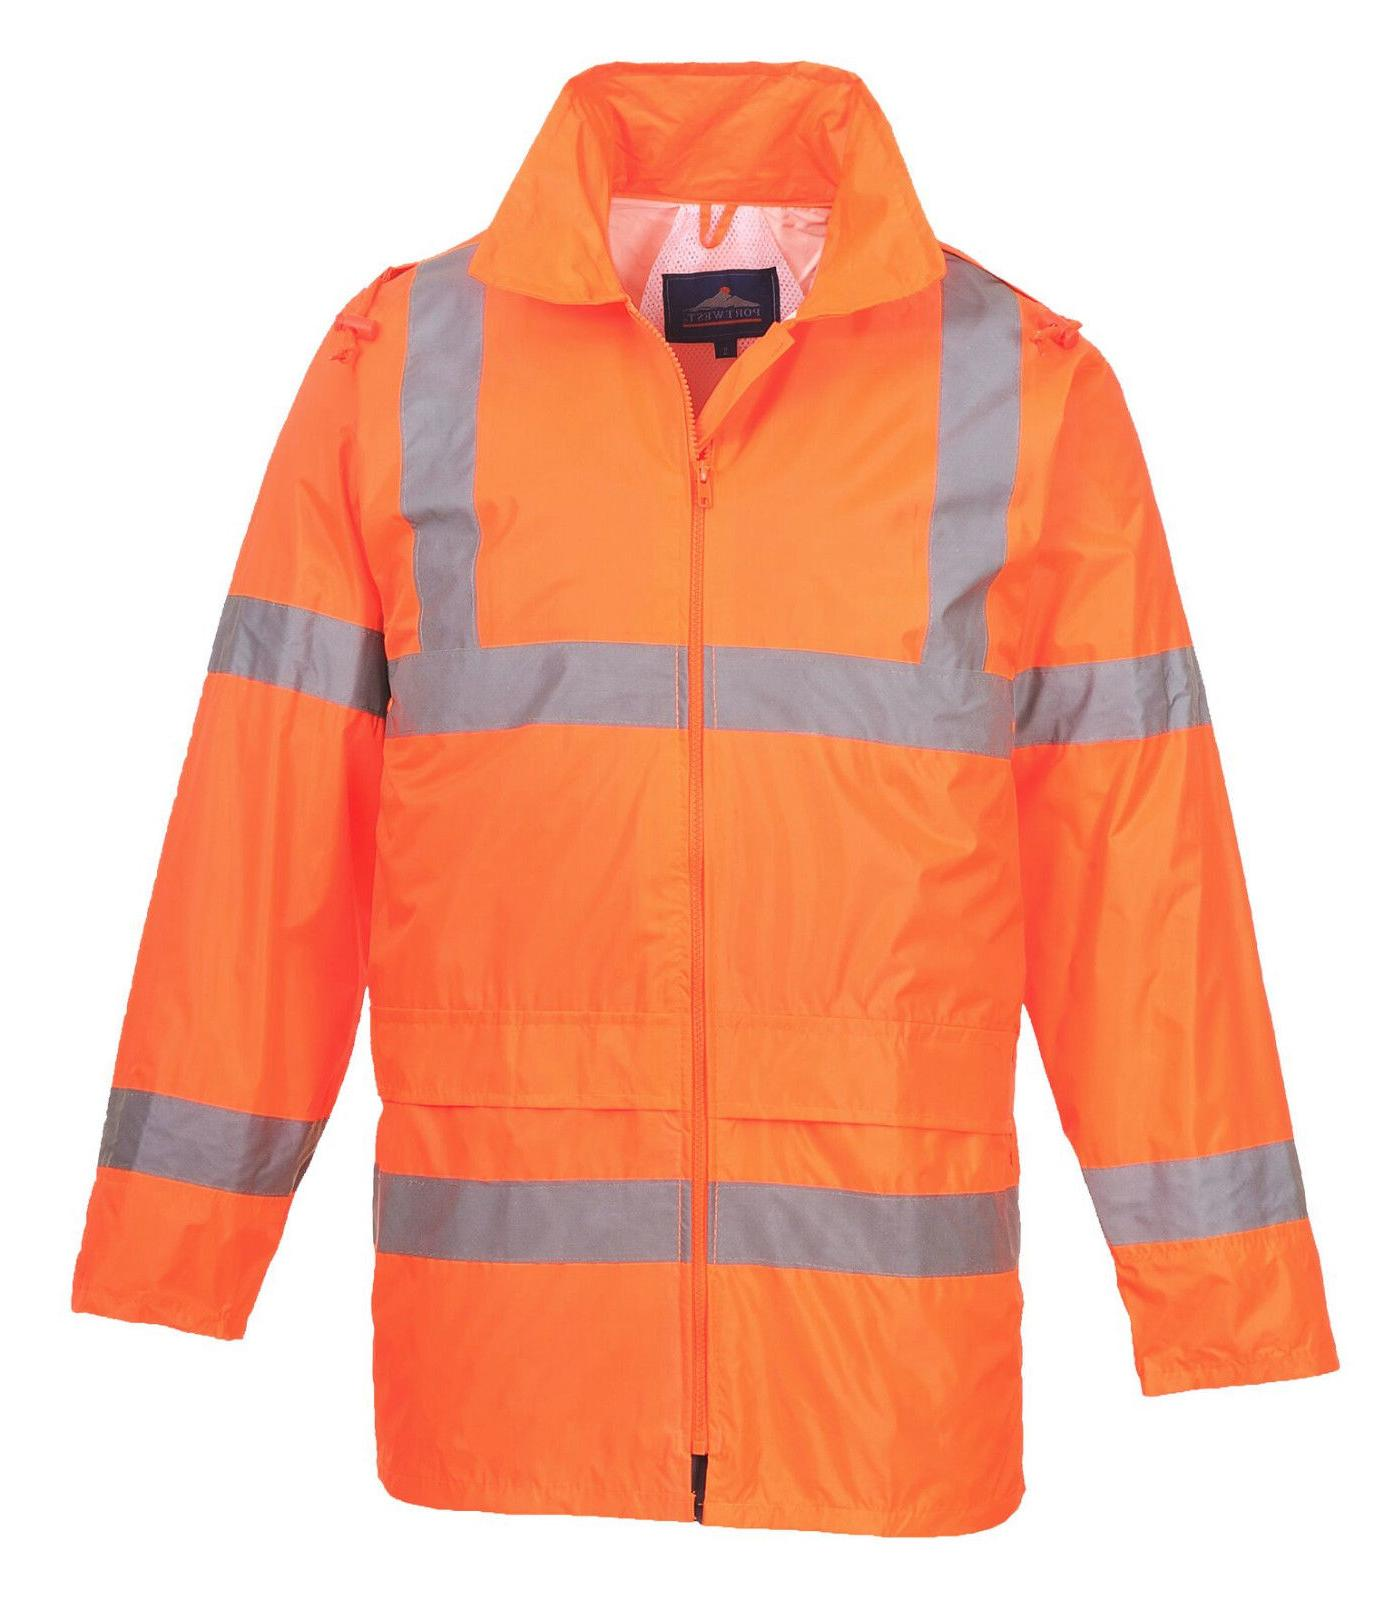 Safety Jacket w Hood S-7XL